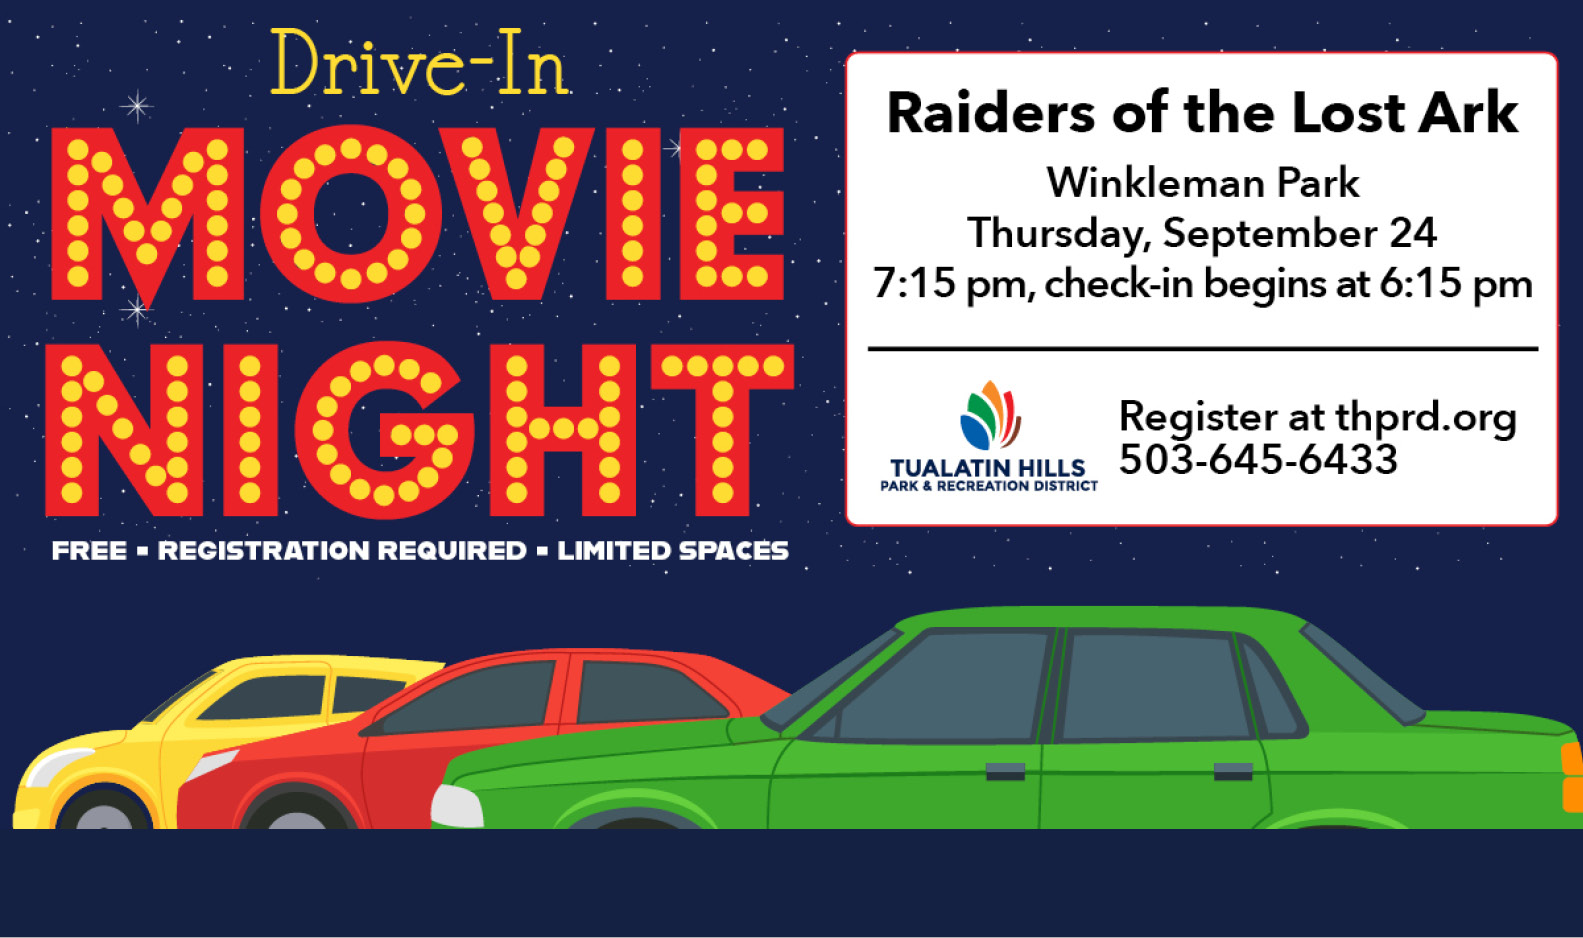 Drive-in Movie - This Thursday, Sept. 24